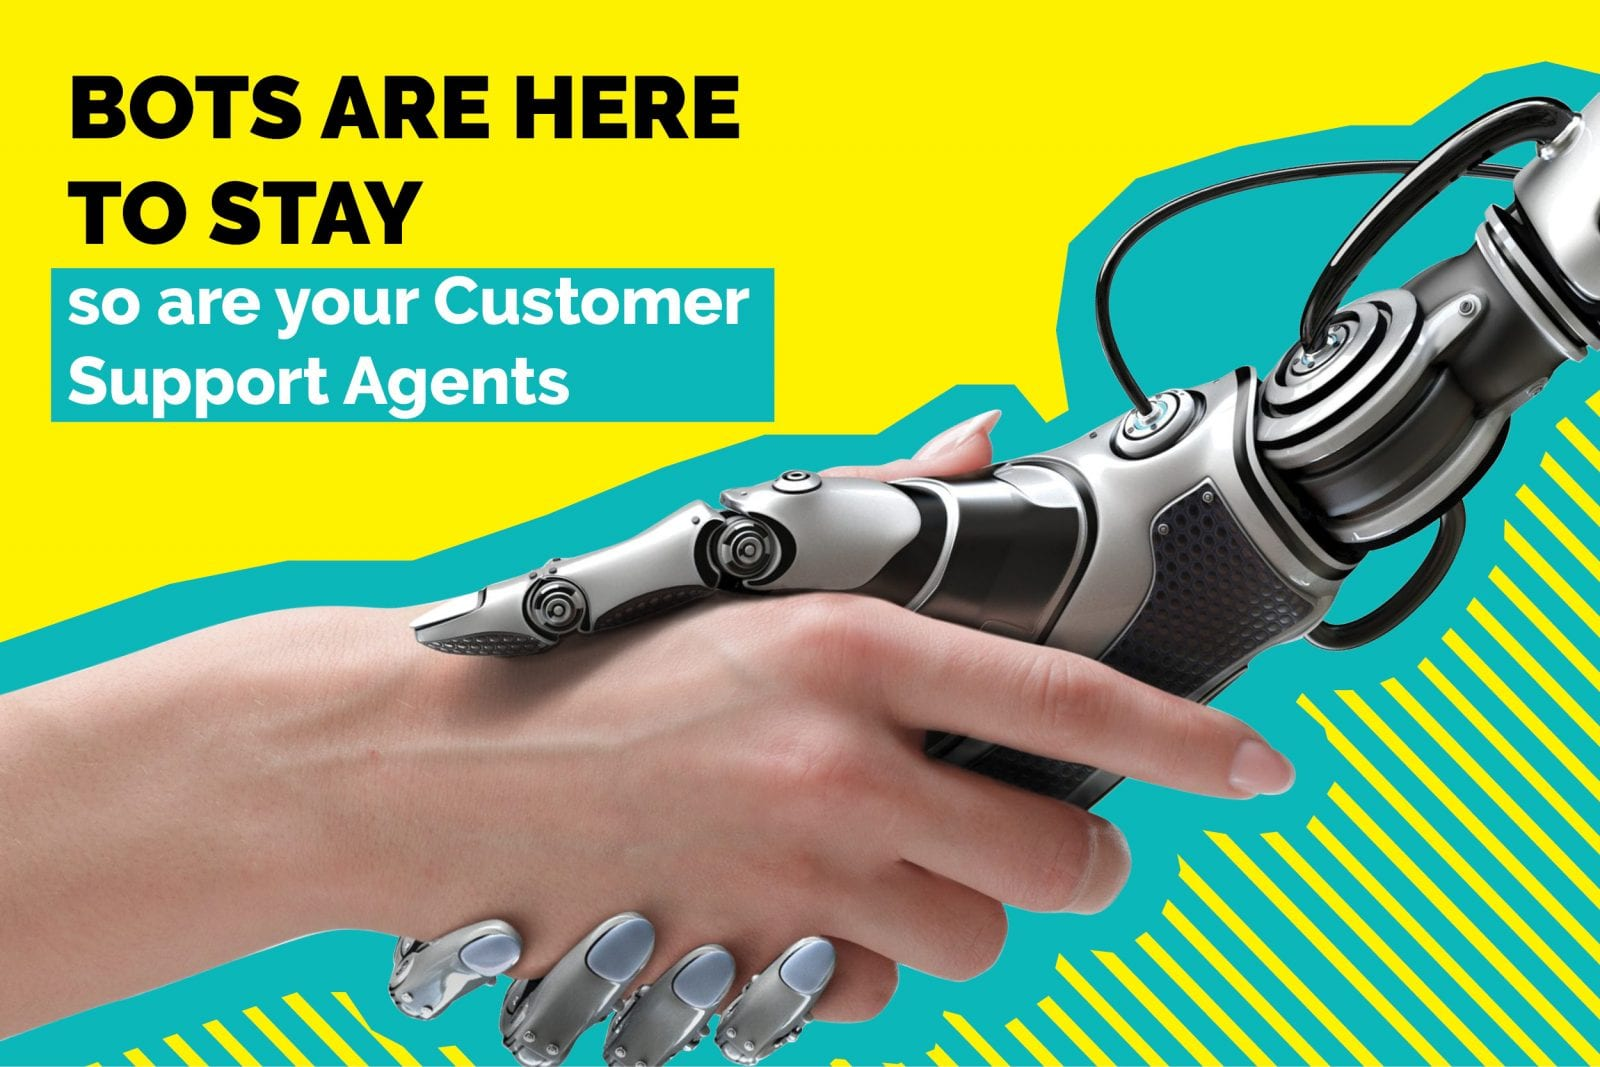 Bots Are Here To Stay — So Are Your Customer Support Agents